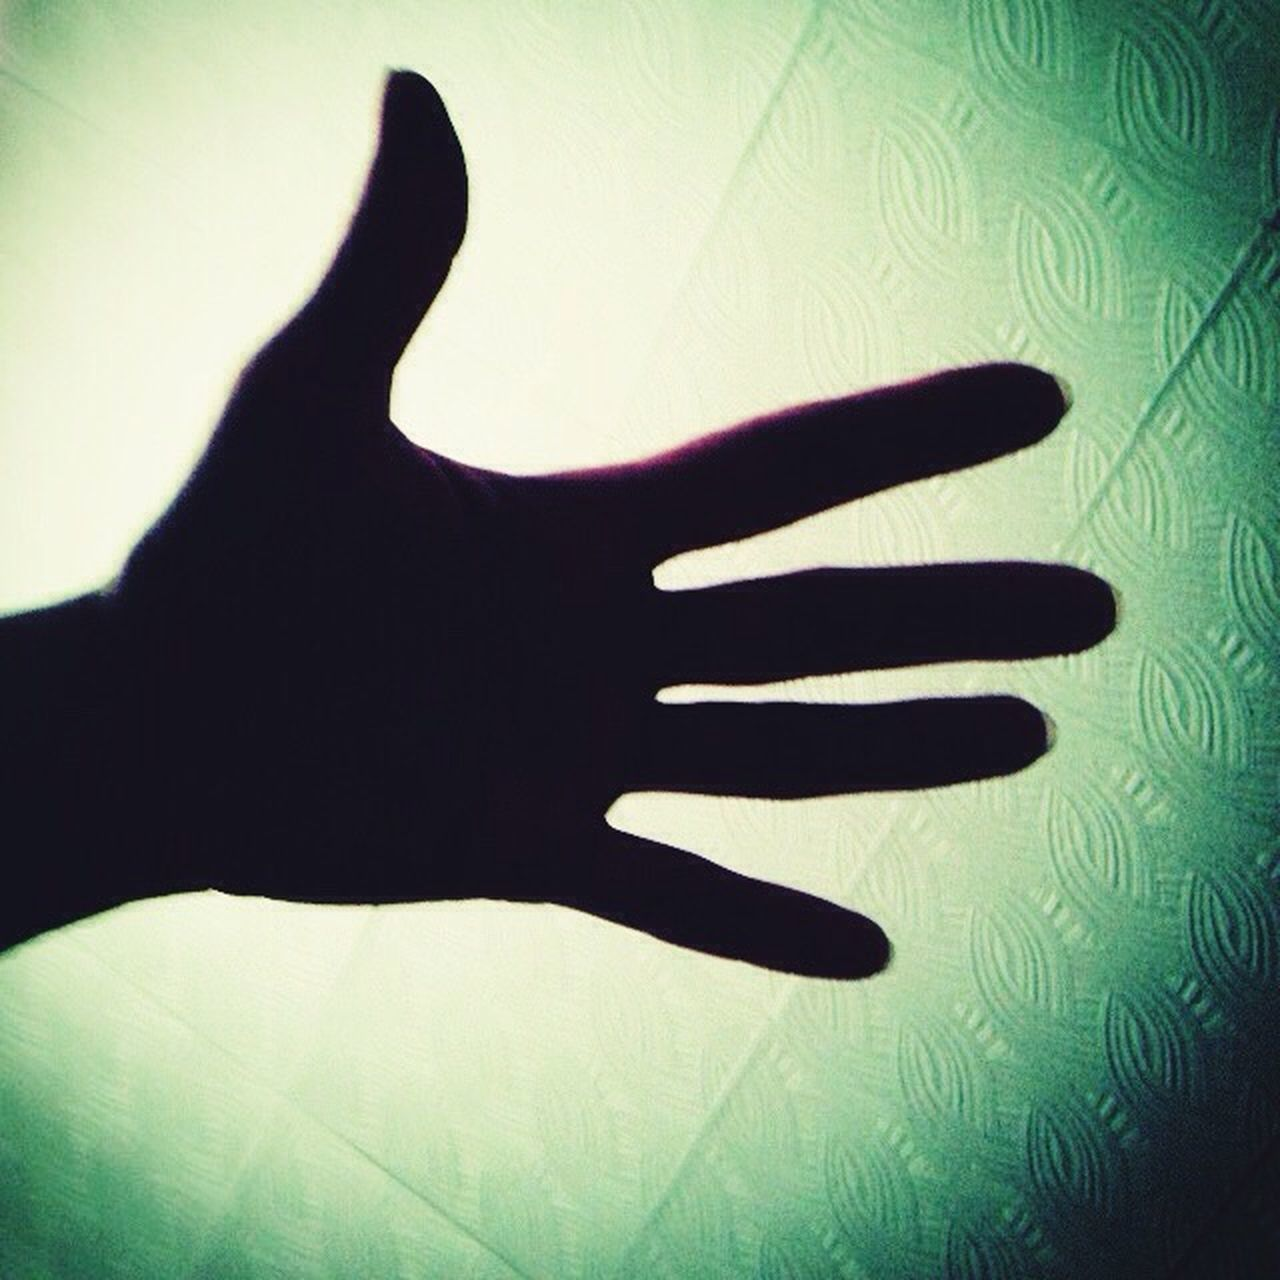 human hand, human body part, human finger, one person, gesturing, silhouette, shadow, spooky, indoors, people, one man only, adults only, adult, palm, close-up, only men, day